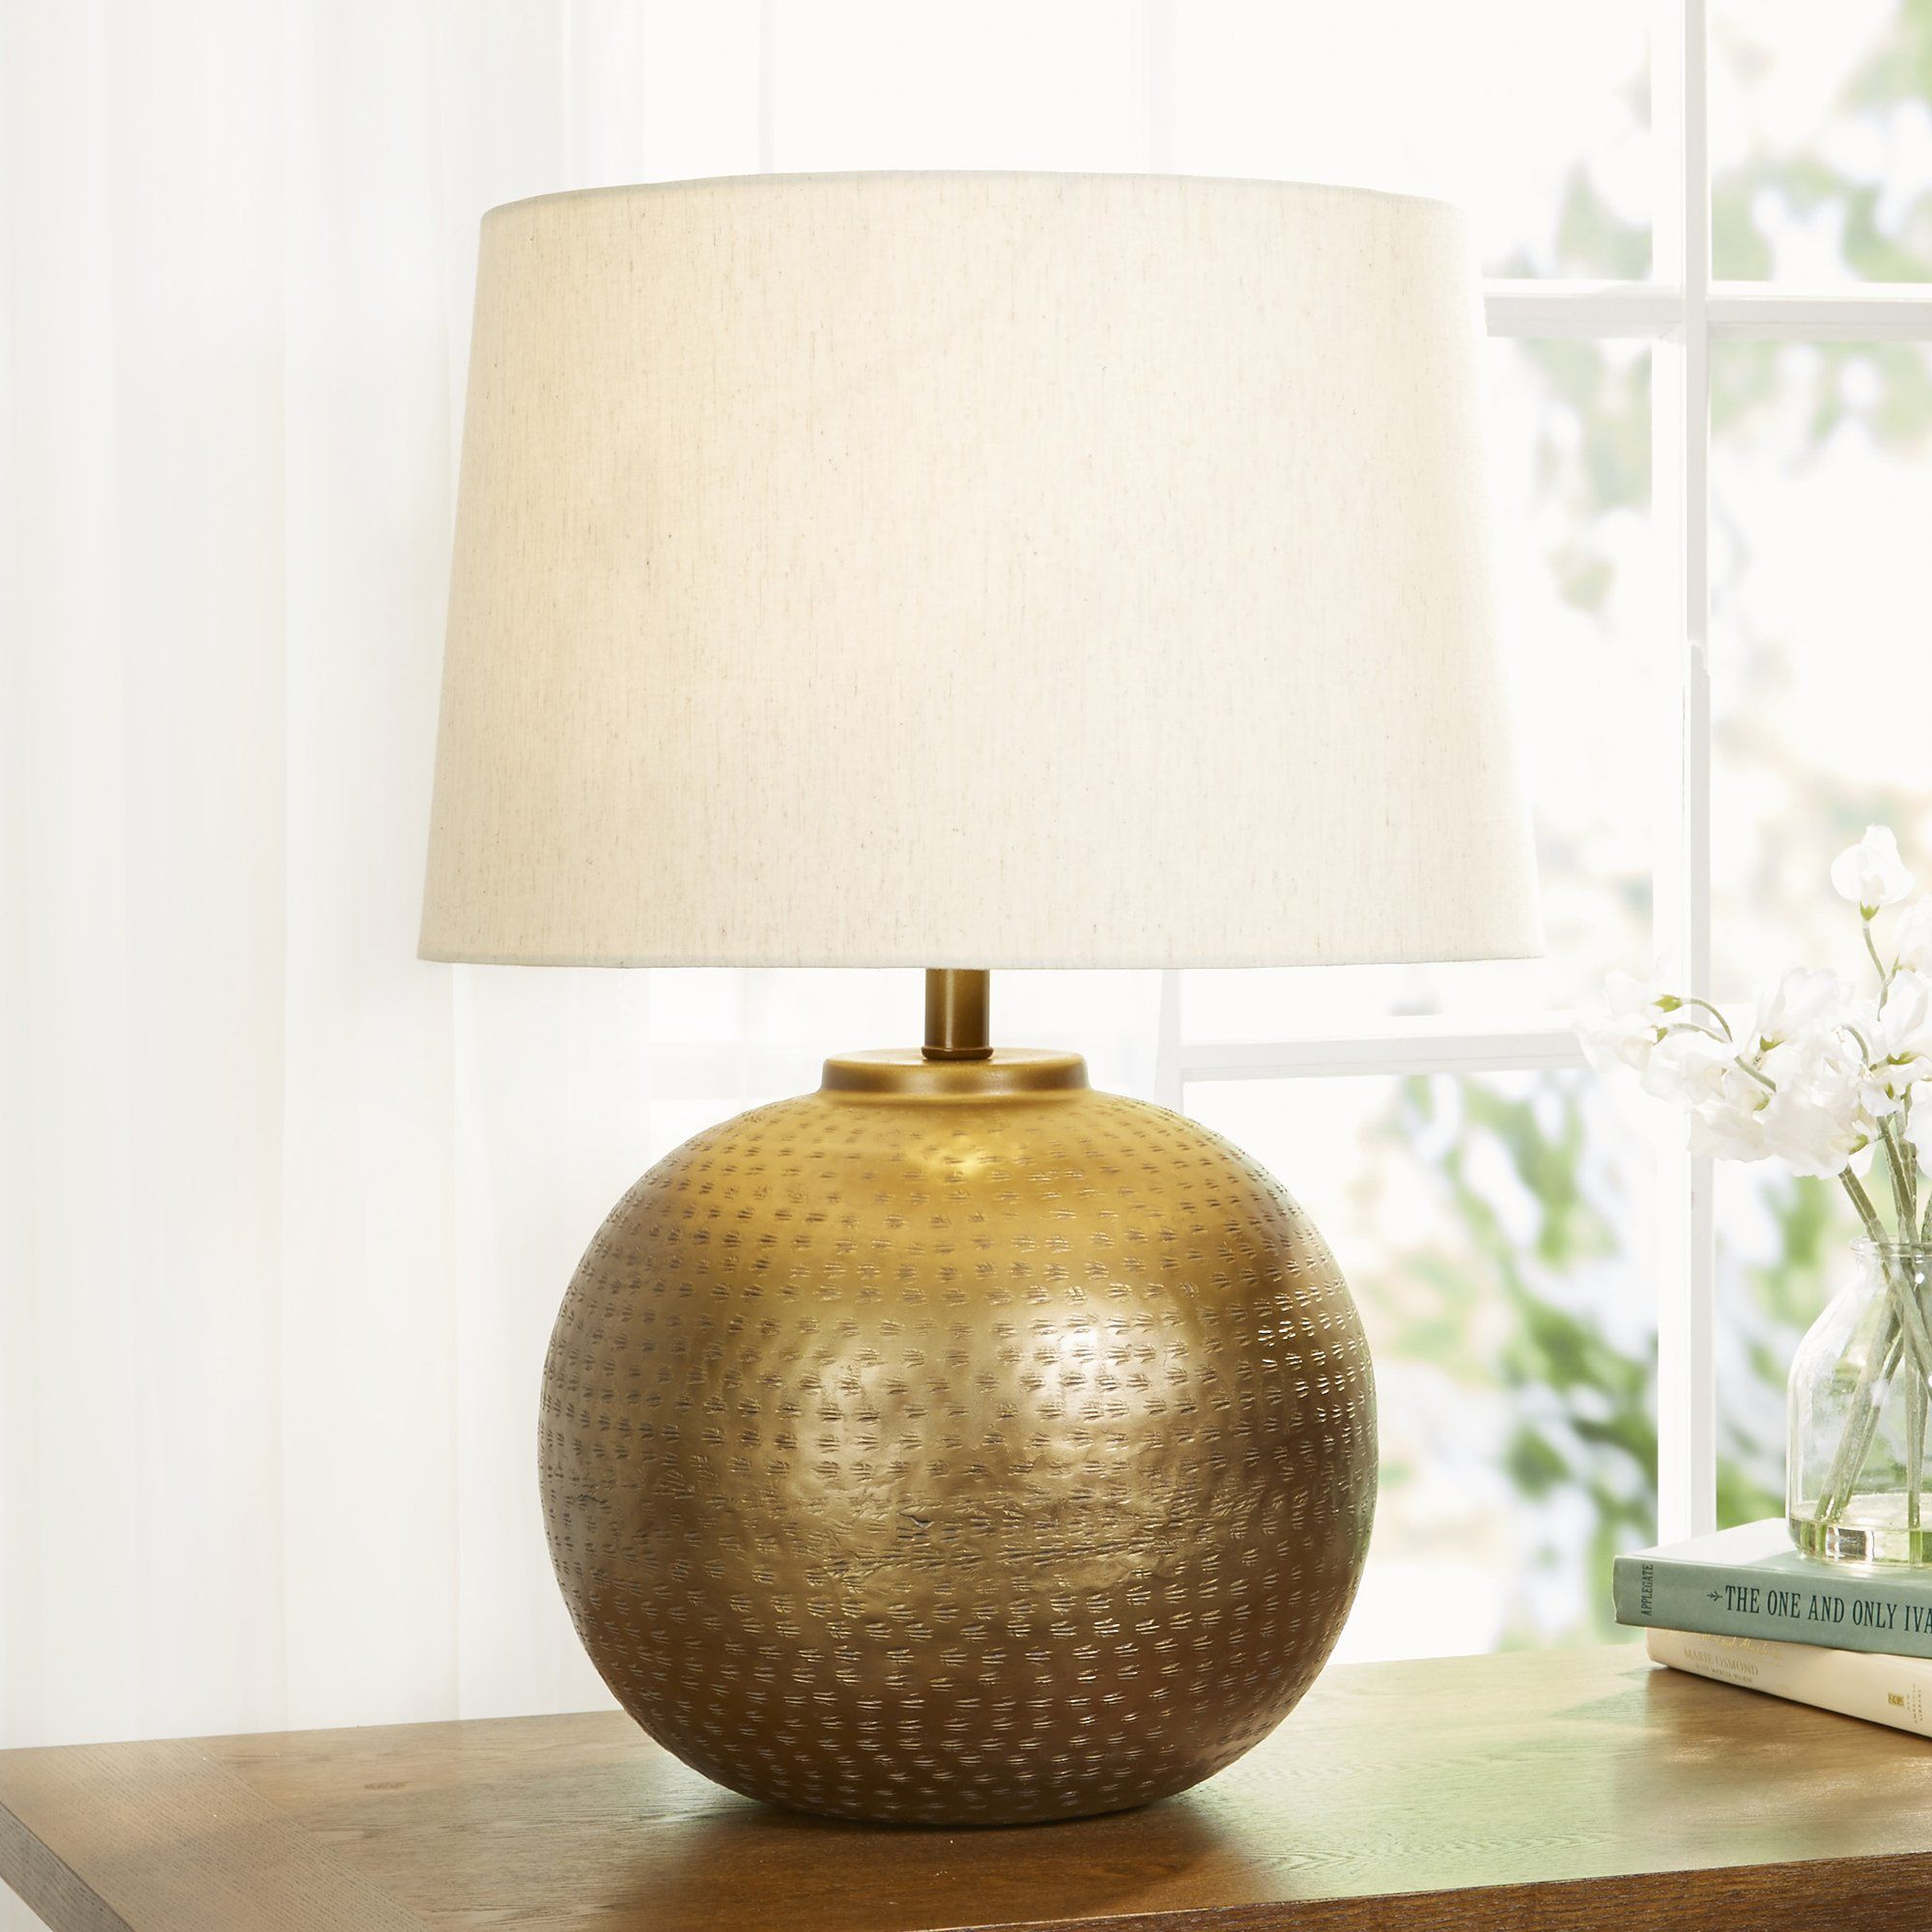 This Table Lamp Rounds Out Modern Design With A Rustic Aesthetic For Stunning Results Tonal Texturing Gives T Rustic Doors Rustic Fireplaces Rustic Chandelier